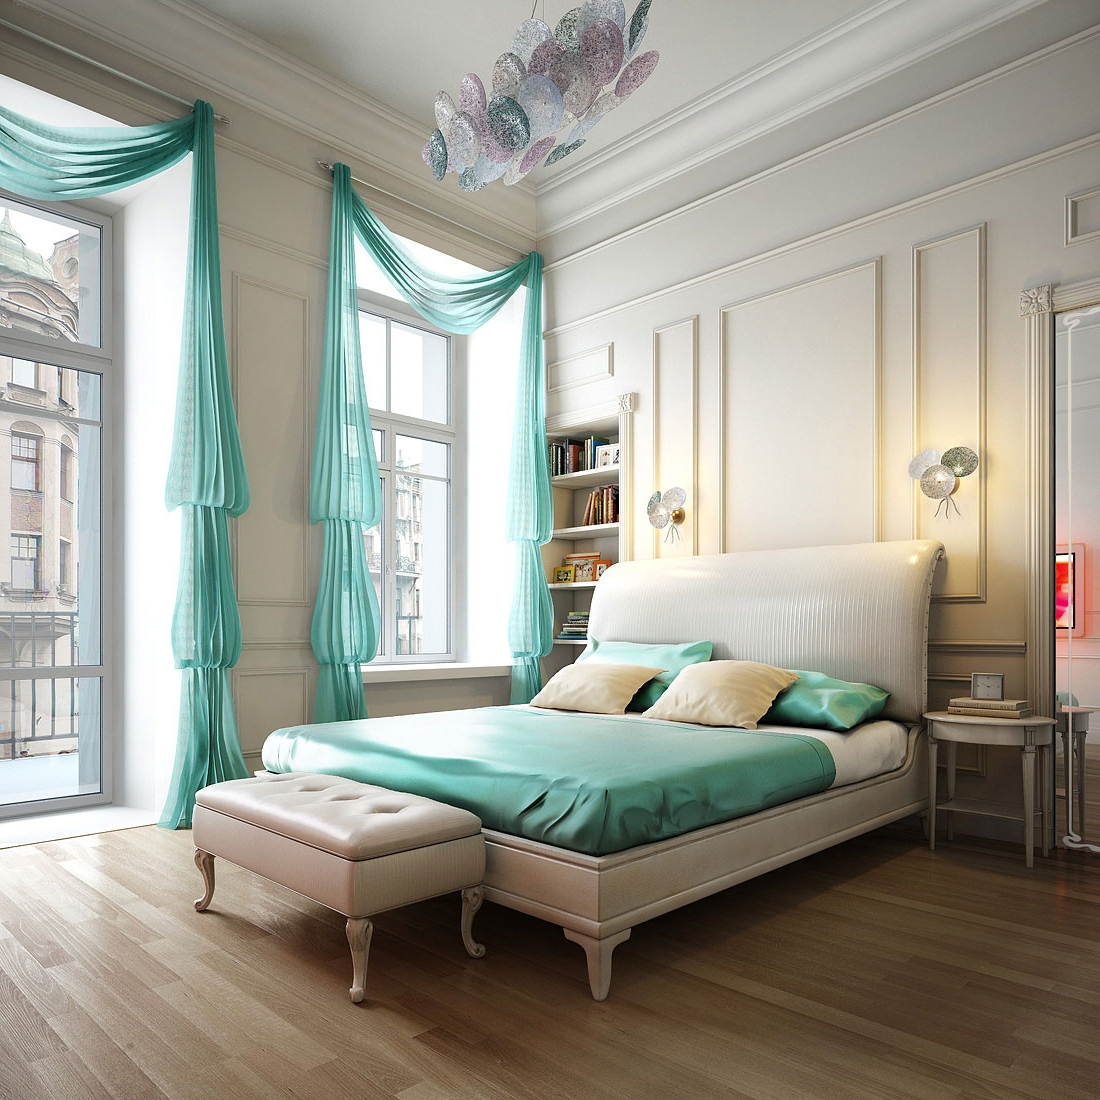 Bedroom-Decor-Ideas-Bedroom-Cool-Teen-Room-Ide-Home-Design-Houzz